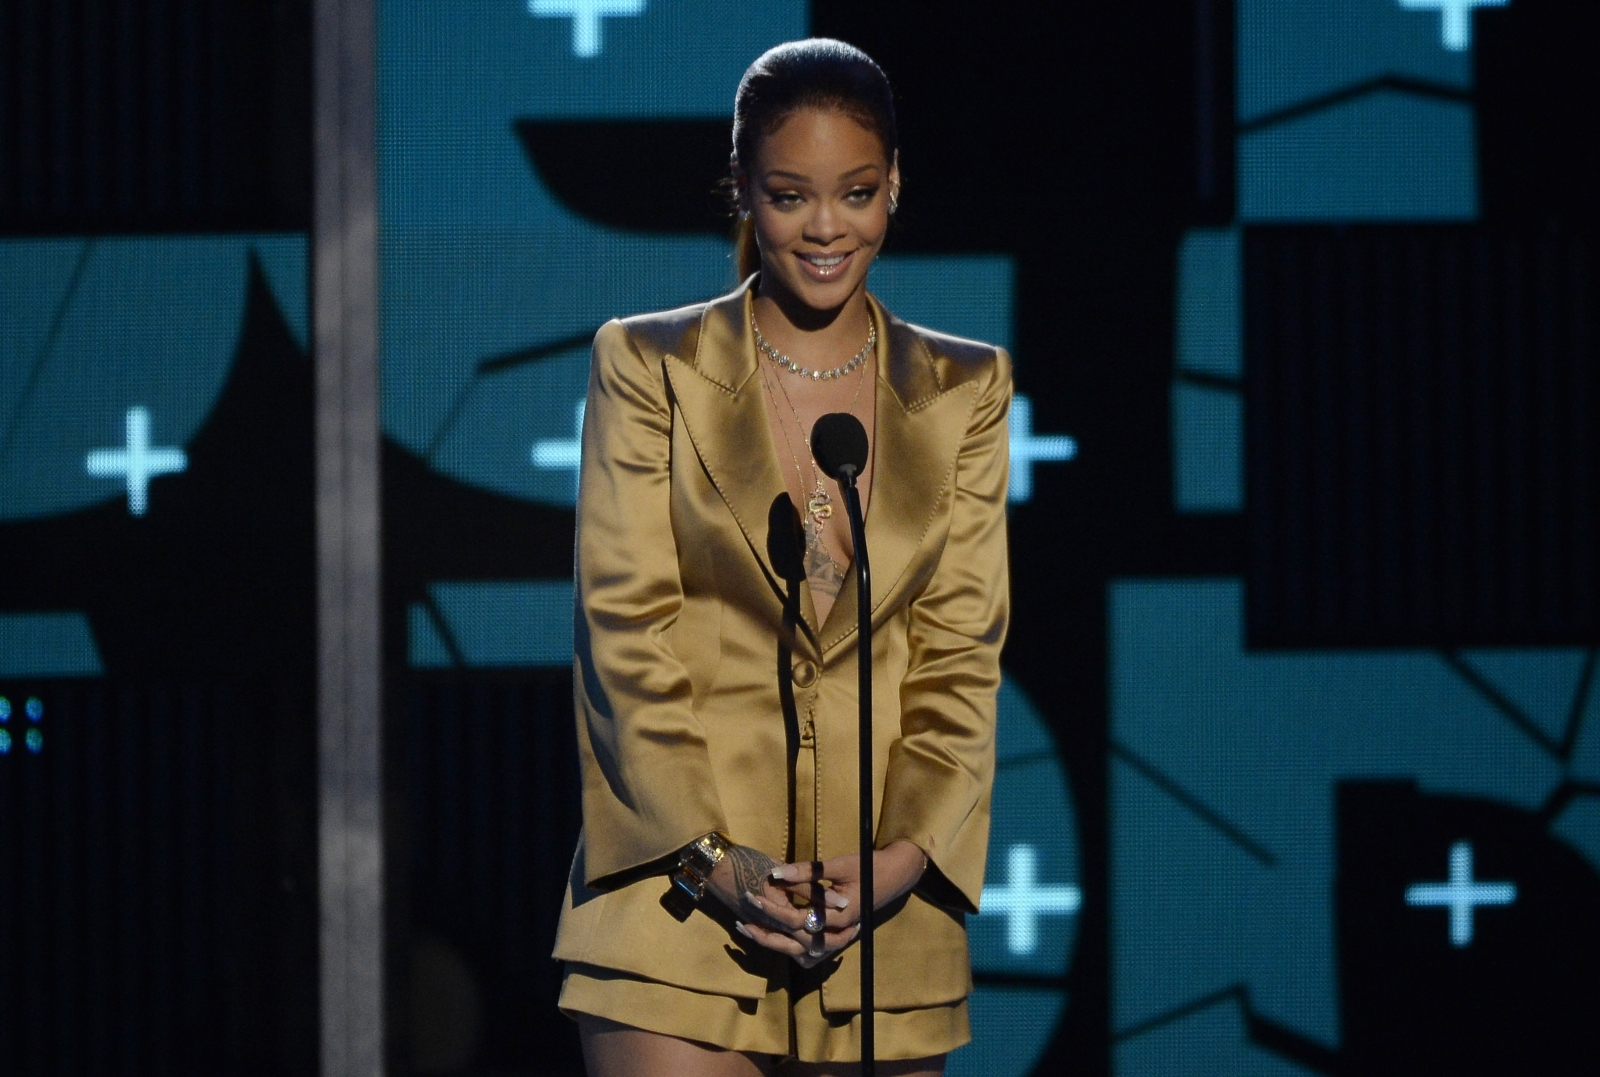 Rihanna at BET Awards 2015